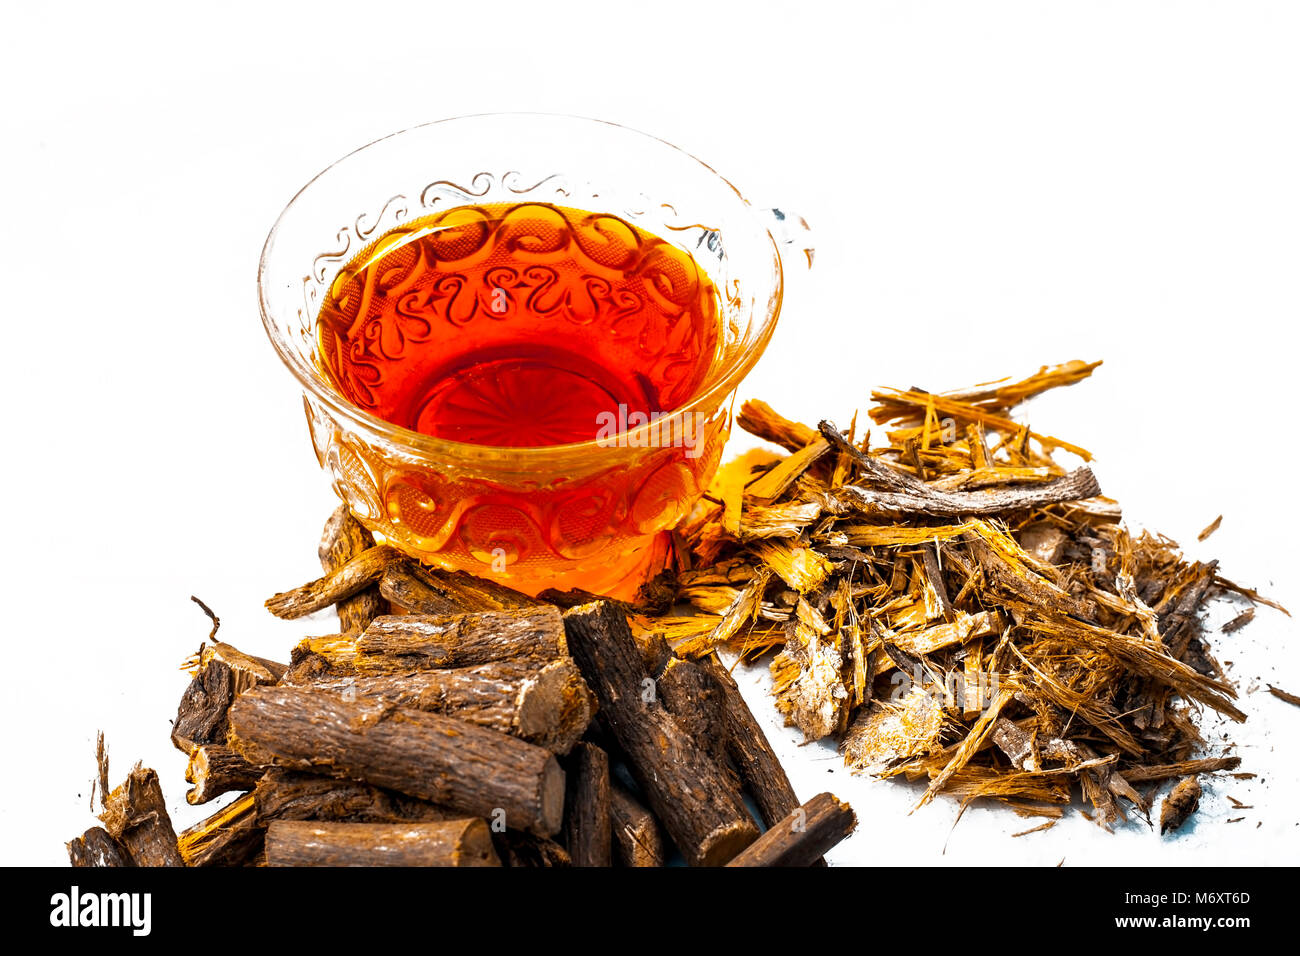 Ayurvedic herb Liquorice root,Licorice root, Mulethi or Glycyrrhiza glabra root and its powder with its tea for Stock Photo